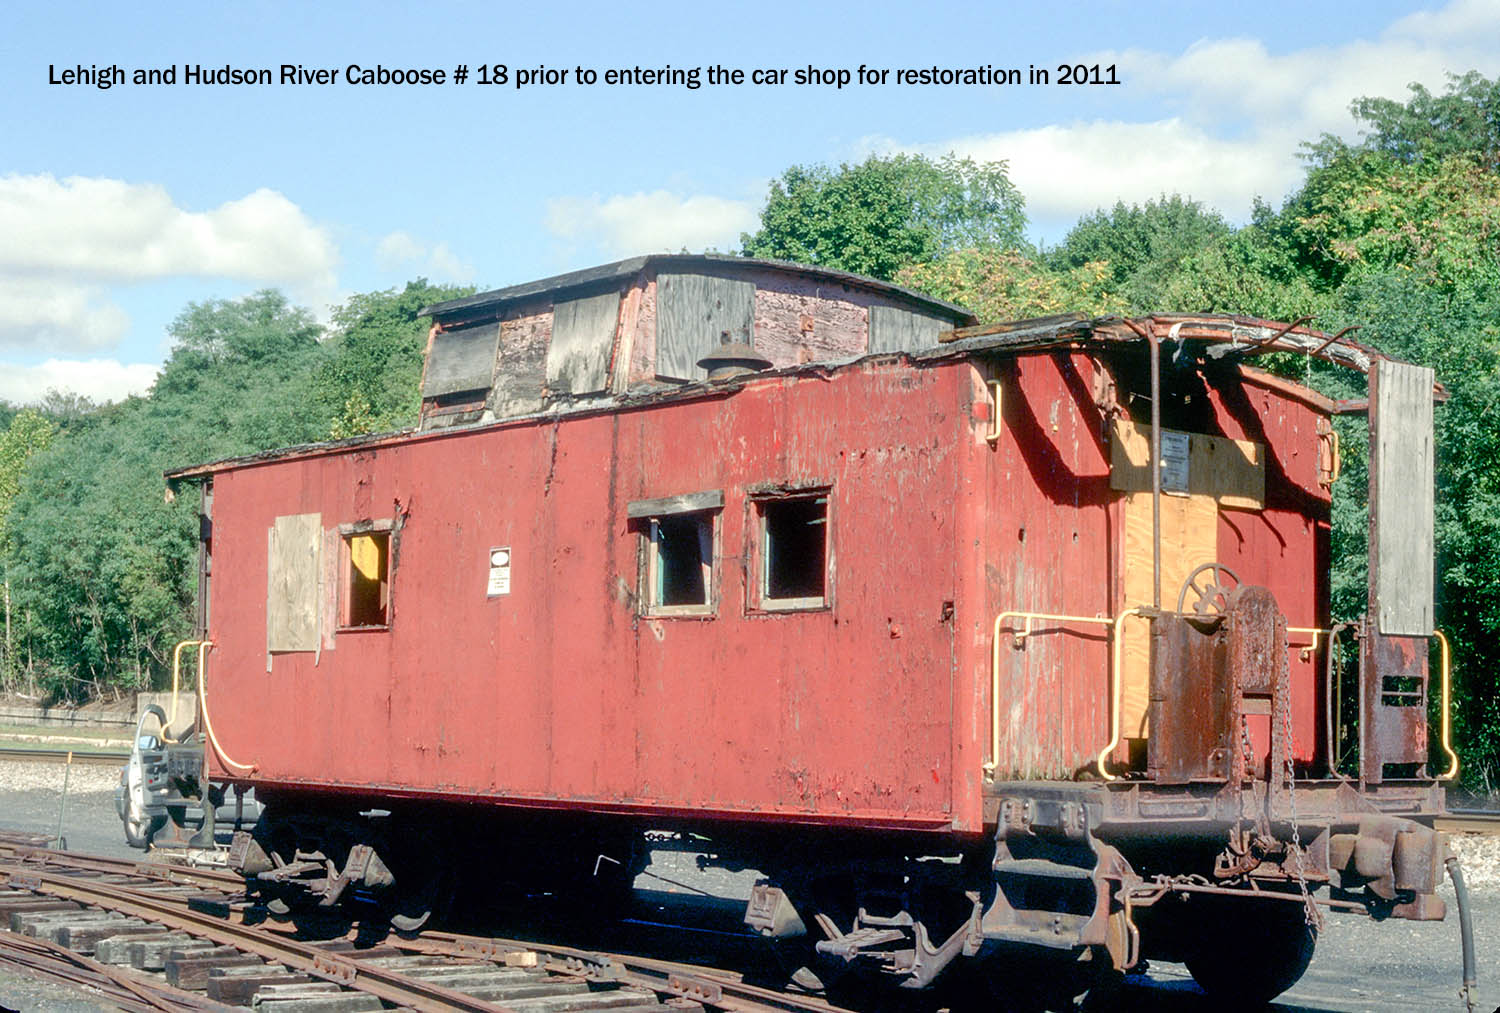 L&HR caboose #18 oruir to going into shop